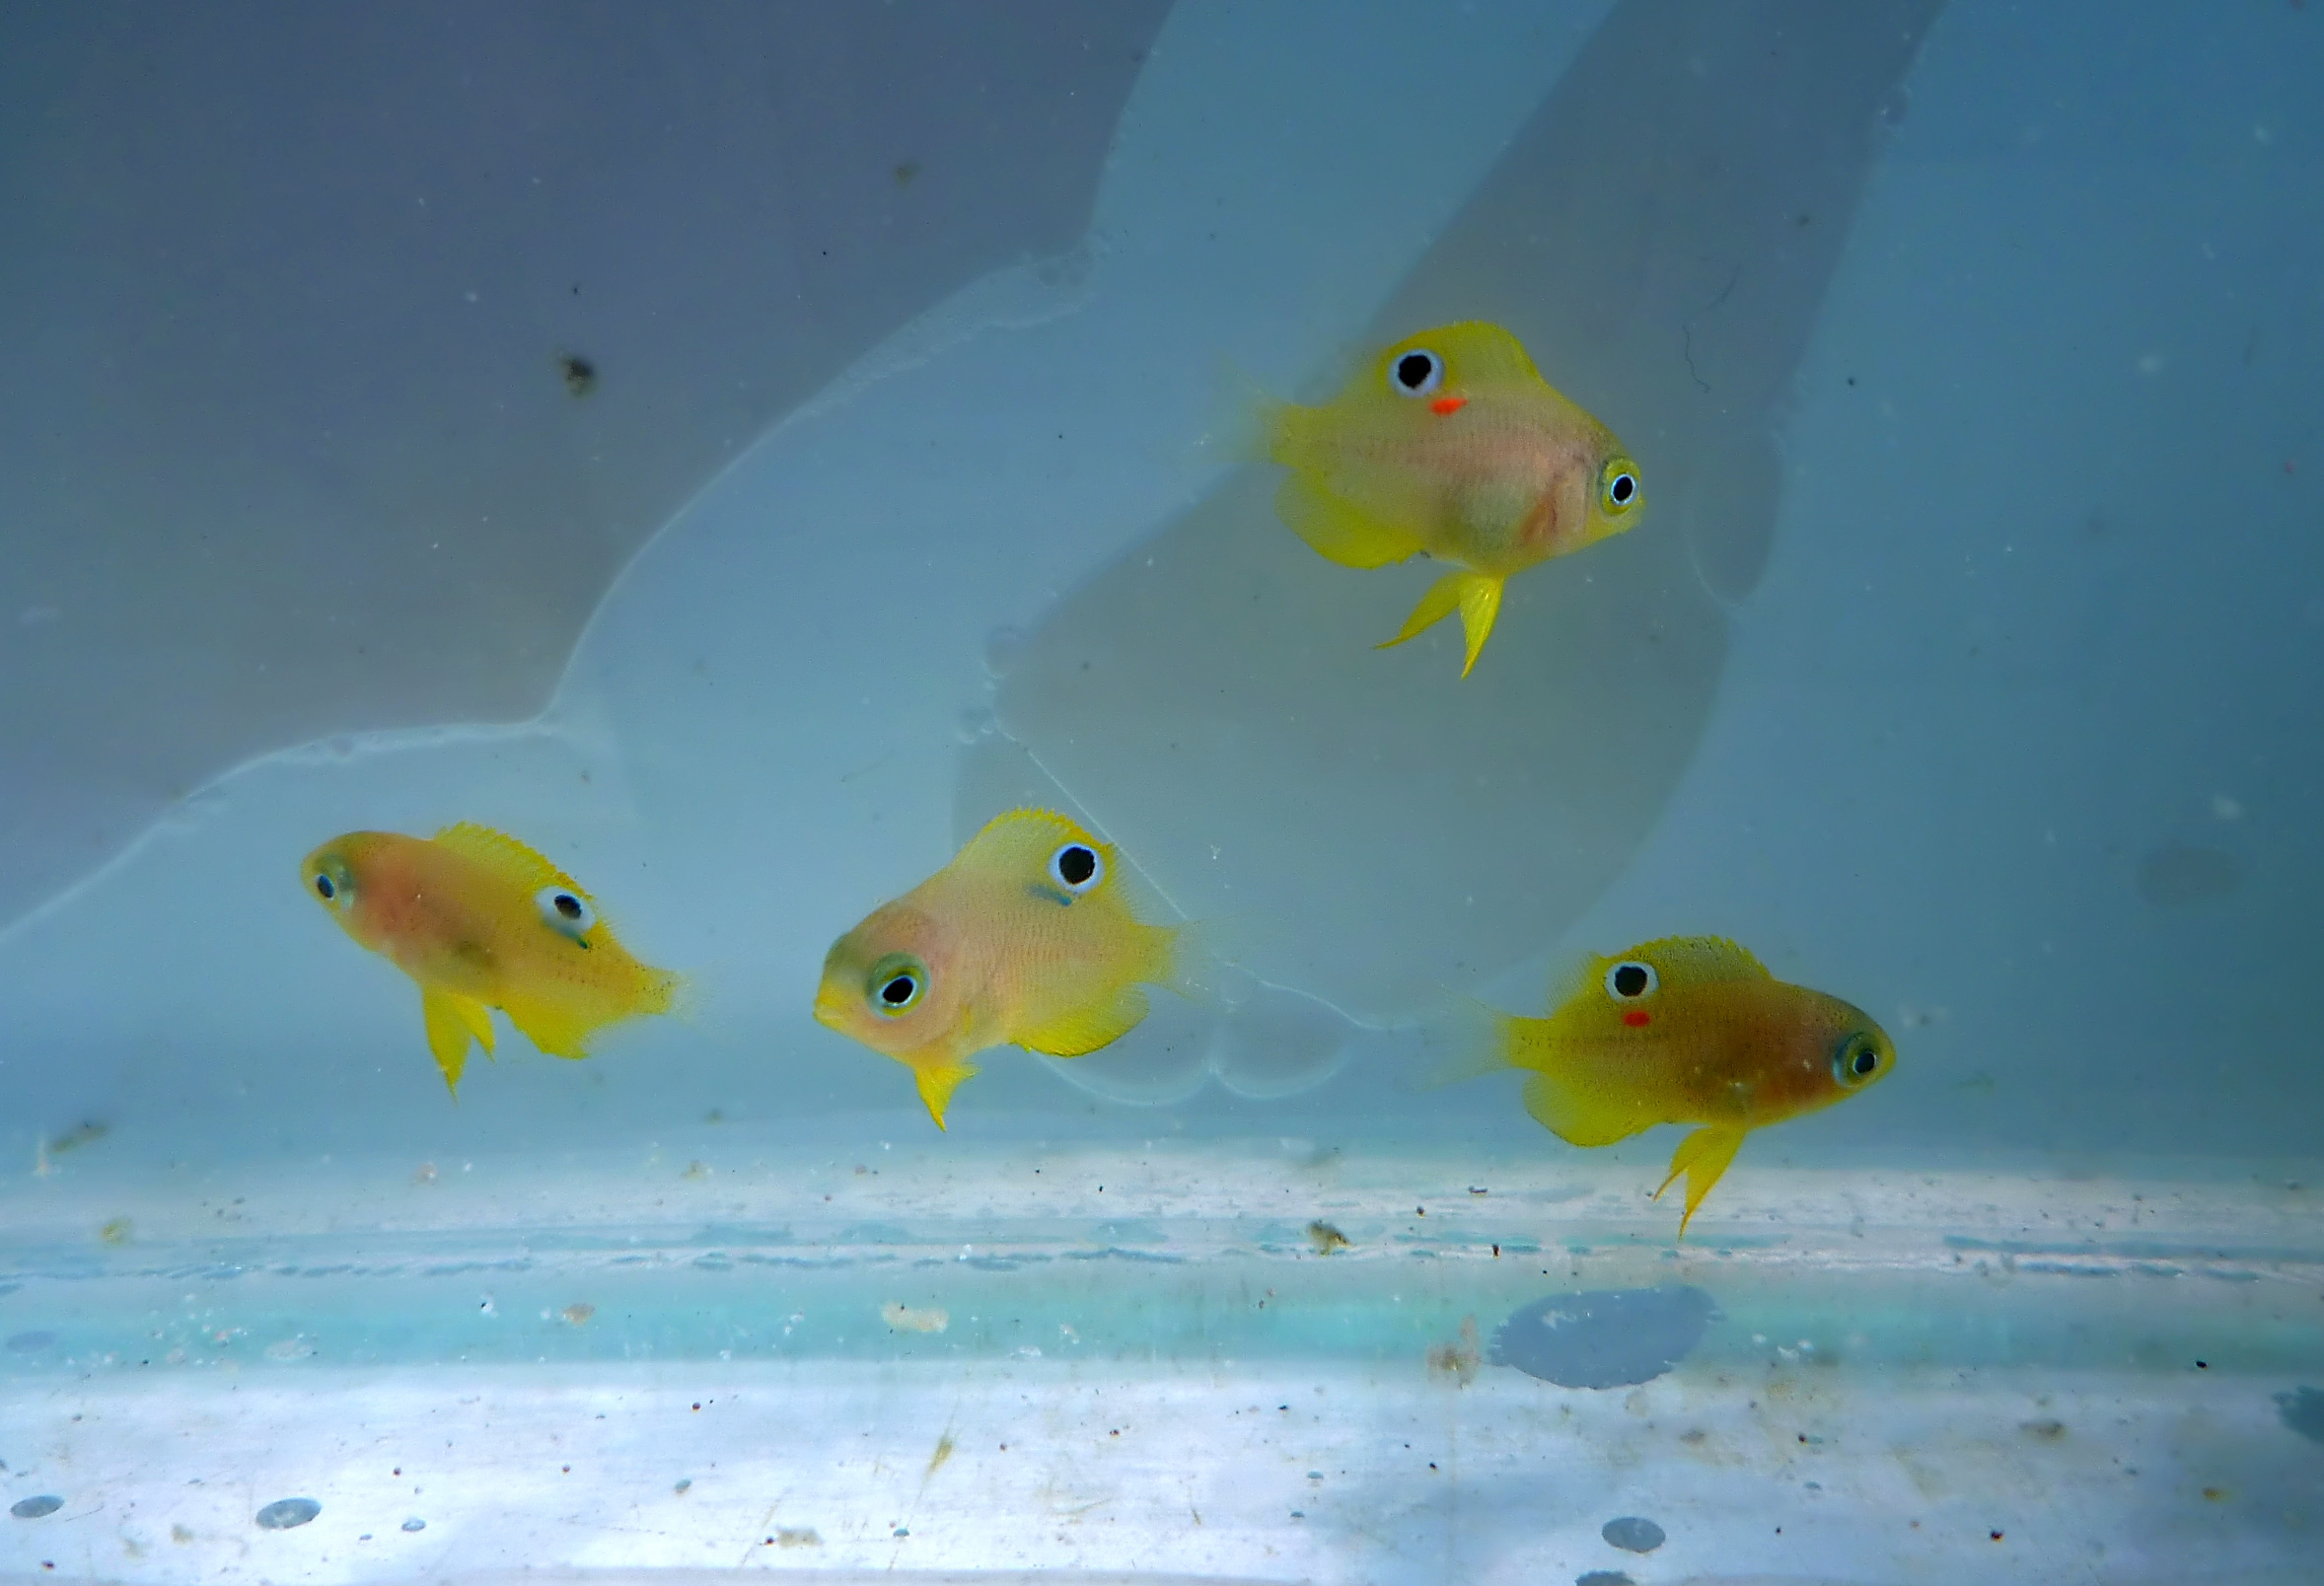 Juvenile Ambon damselfish with individual coloured tags for identification.